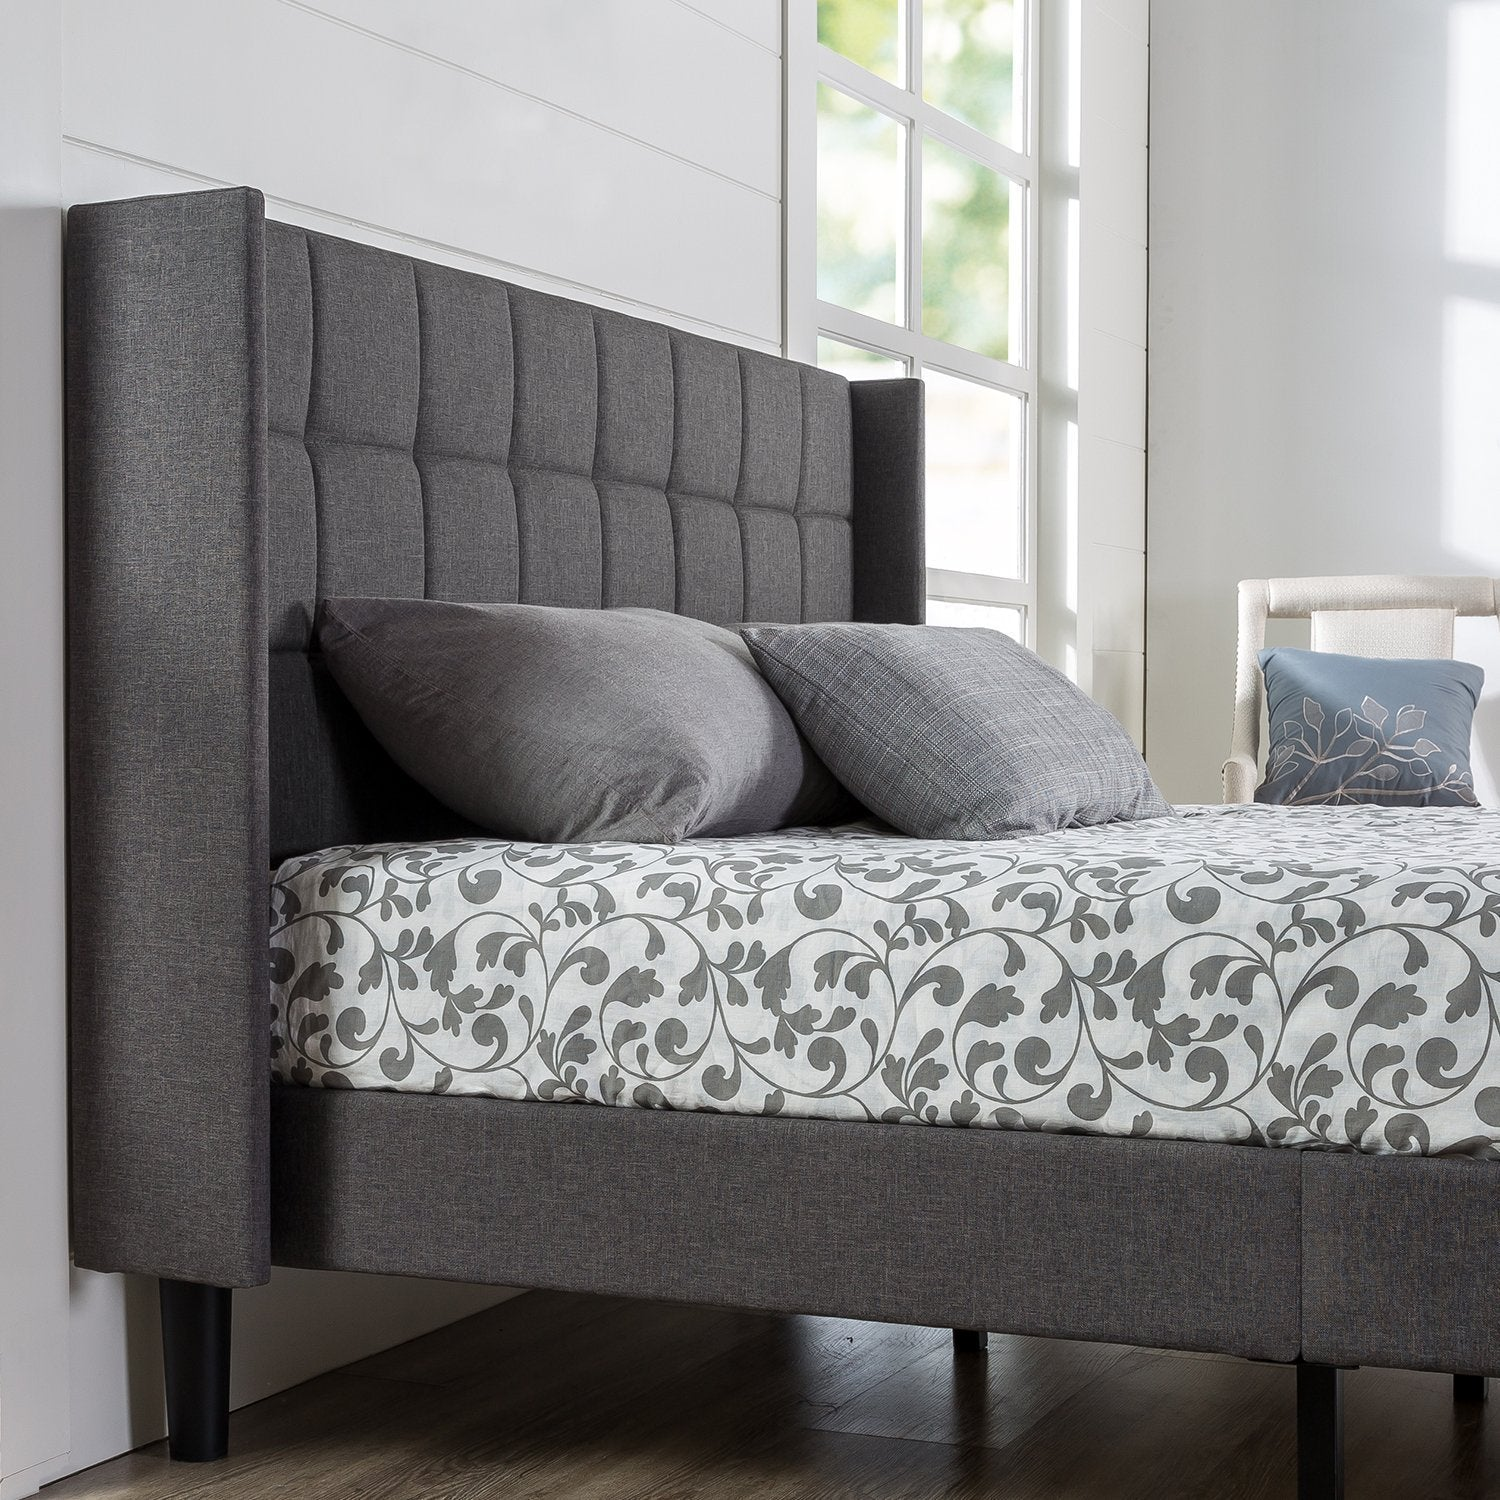 New Century Charcoal Gray Square Style Contemporary Headboard Platform Bed